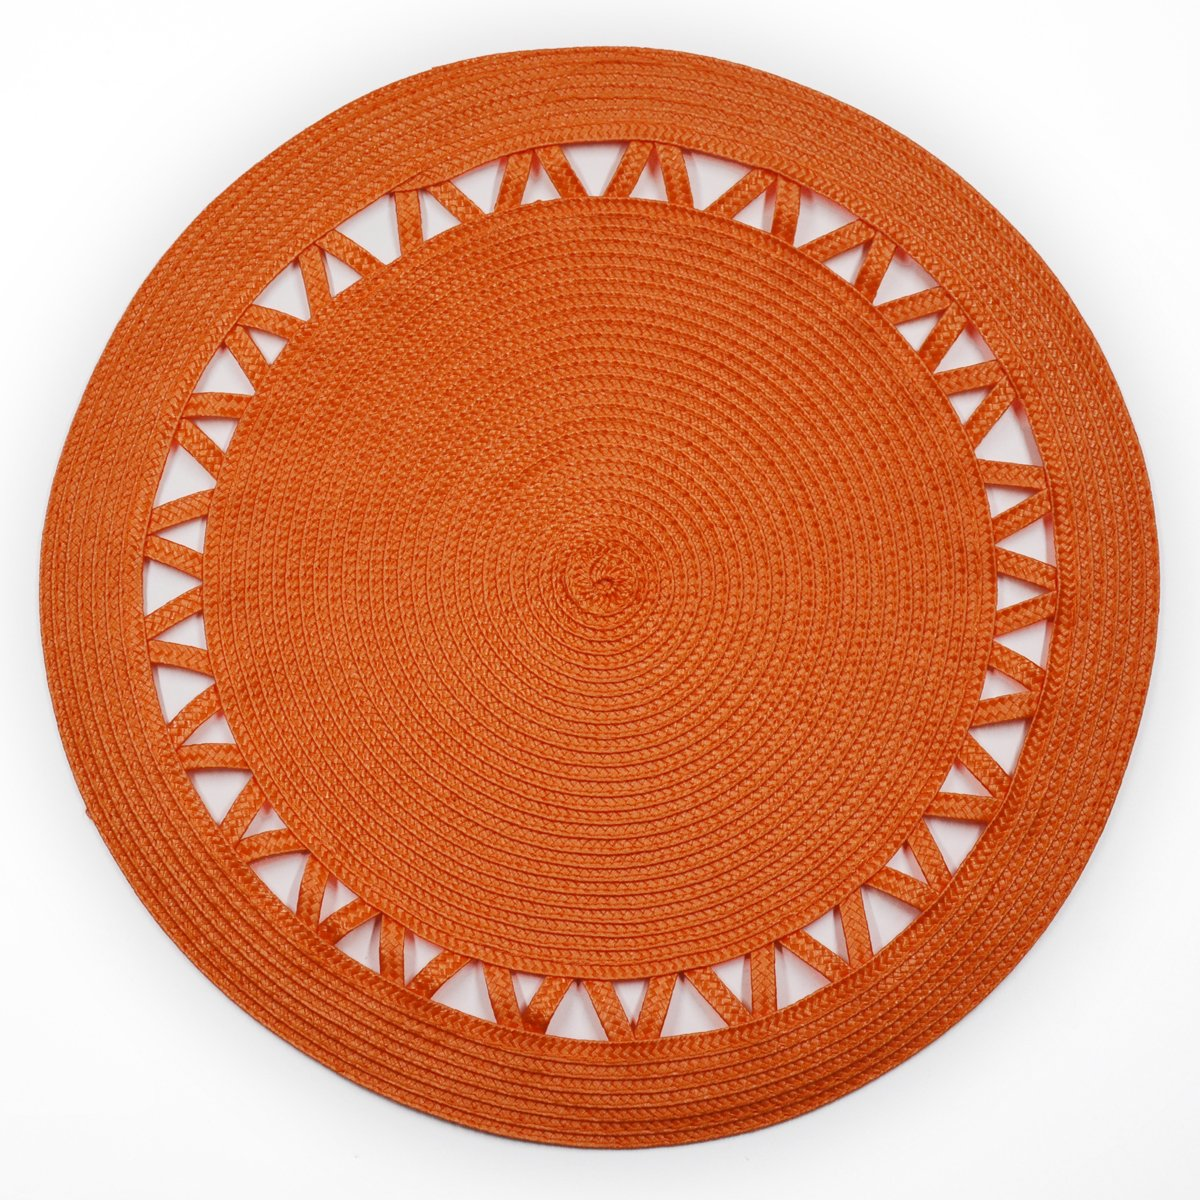 Shamake Round Braided Bamboo Style Woven Placemats Set of 6 14-inch Kitchen Table Decorative Easy to clean